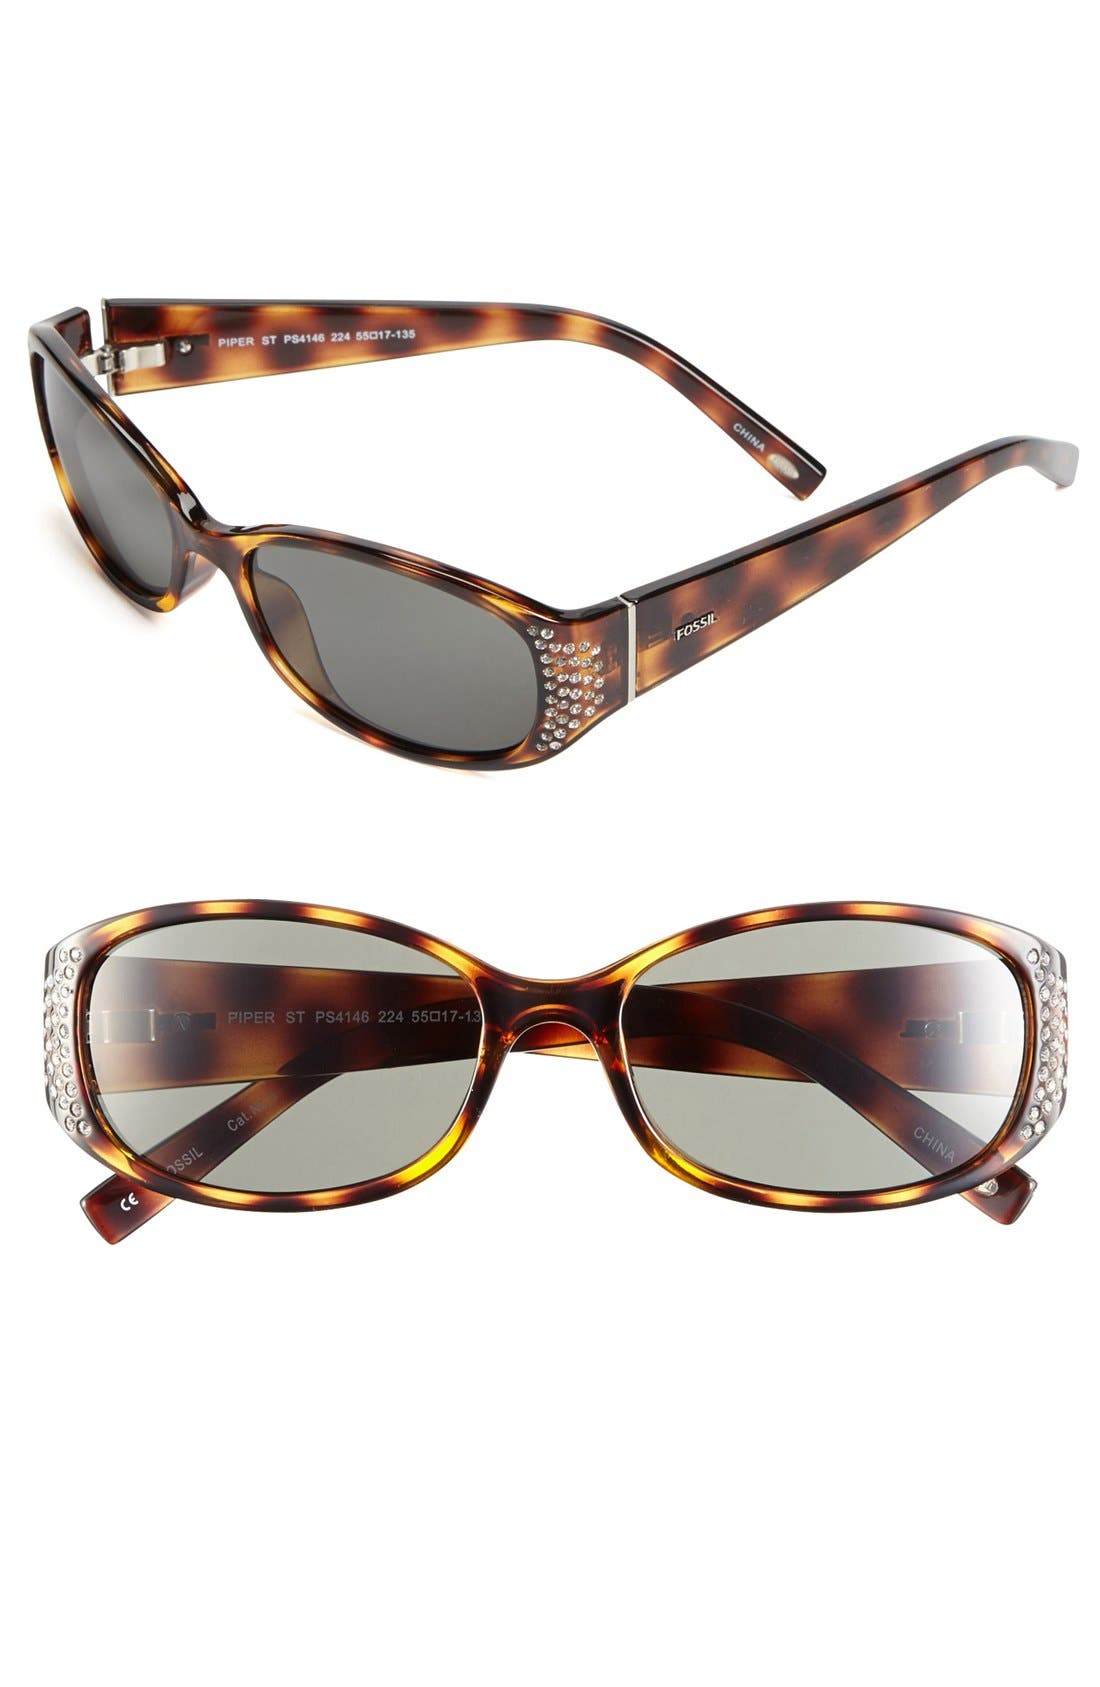 Alternate Image 1 Selected - Fossil 'Piper Street' 55mm Sunglasses